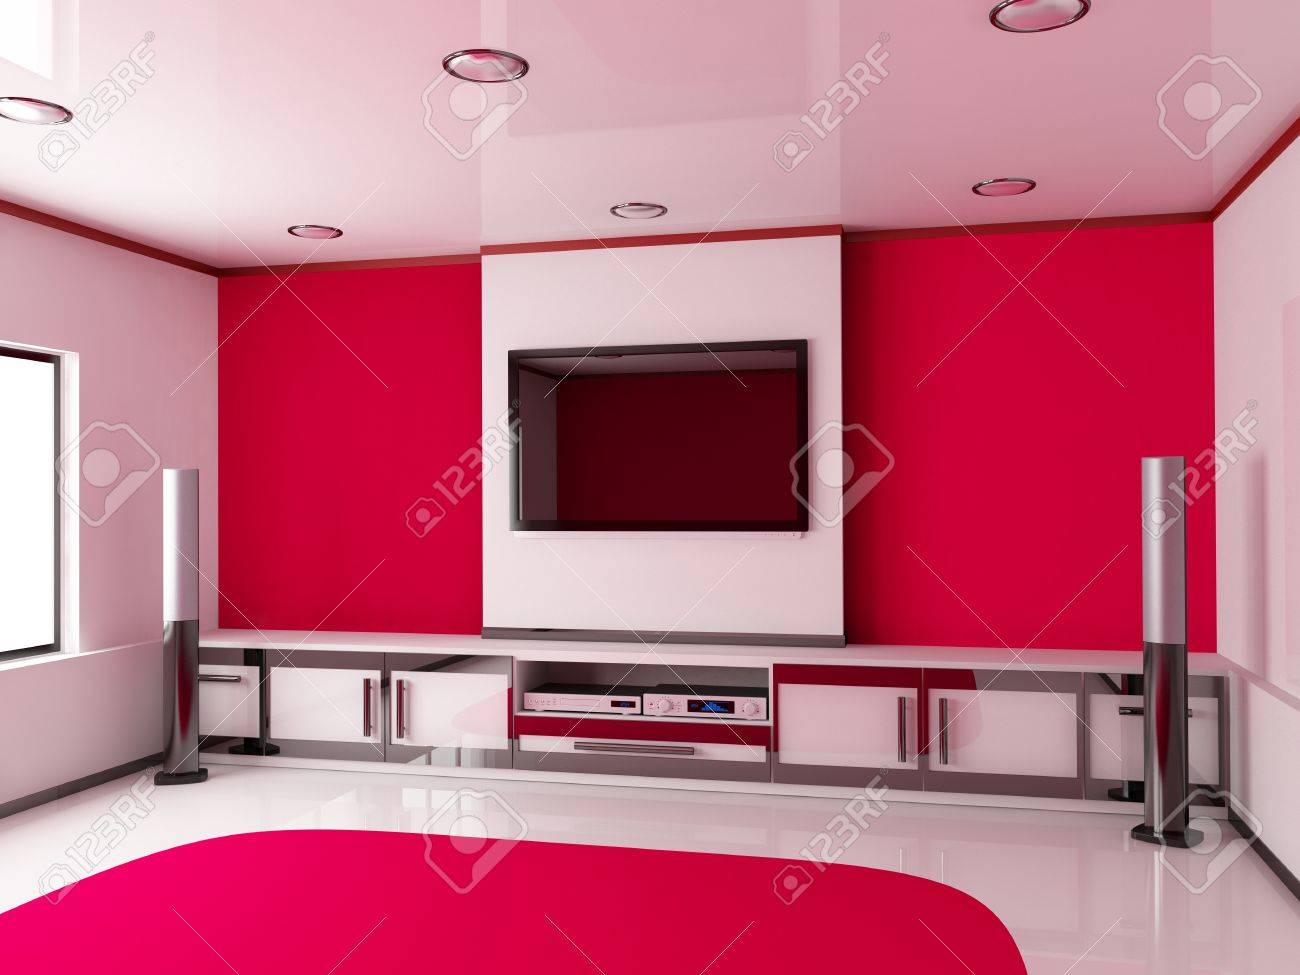 Design modern red room  done 3d Stock Photo - 13005895